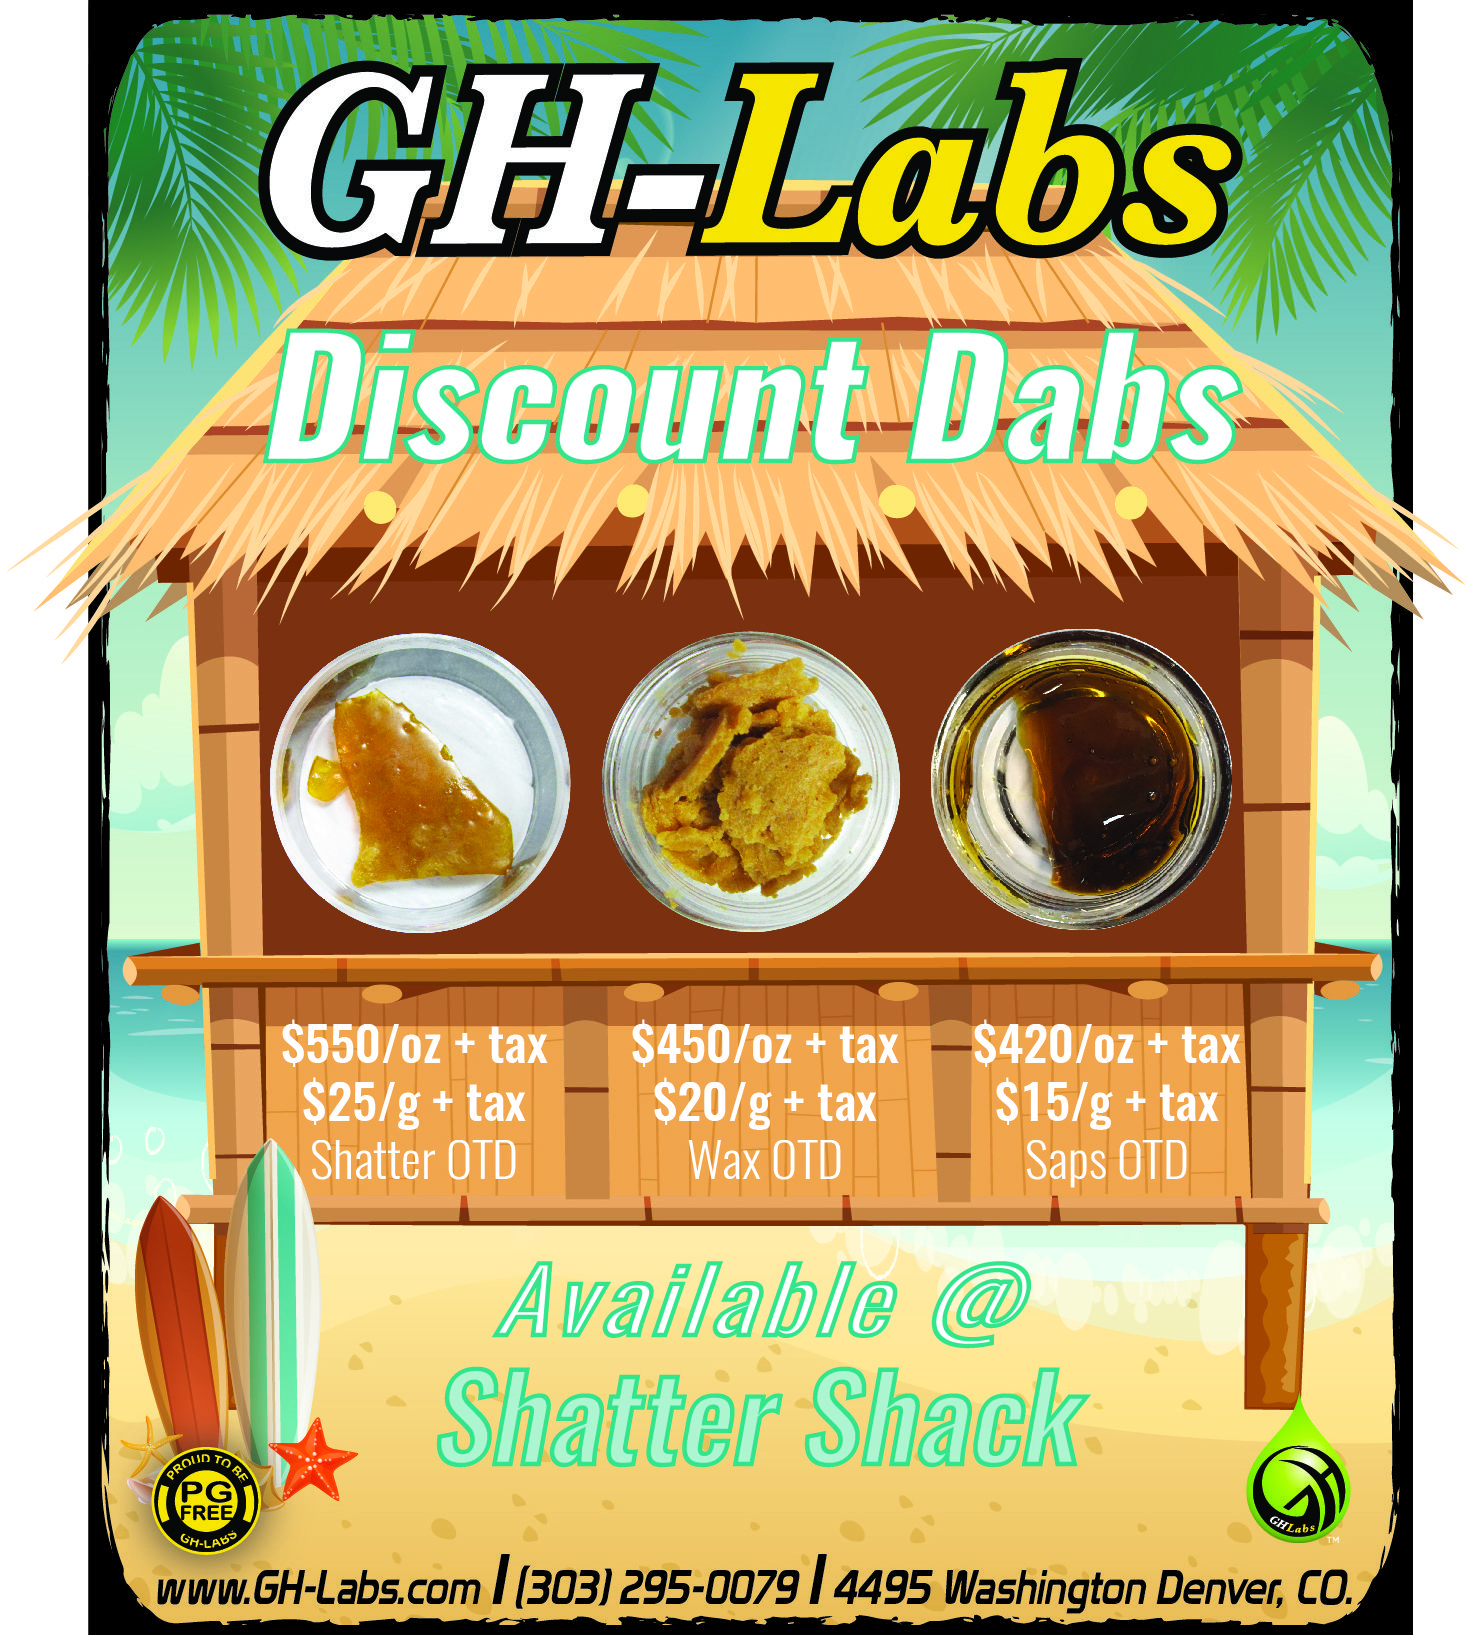 Shatter Shack is back!!! We have discount dabs on sale! OTD pricing: SAP $15/g+tax, WAX $20/g+tax, SHATTER $25/g+tax. #dabs #shatter #wax #denver ...